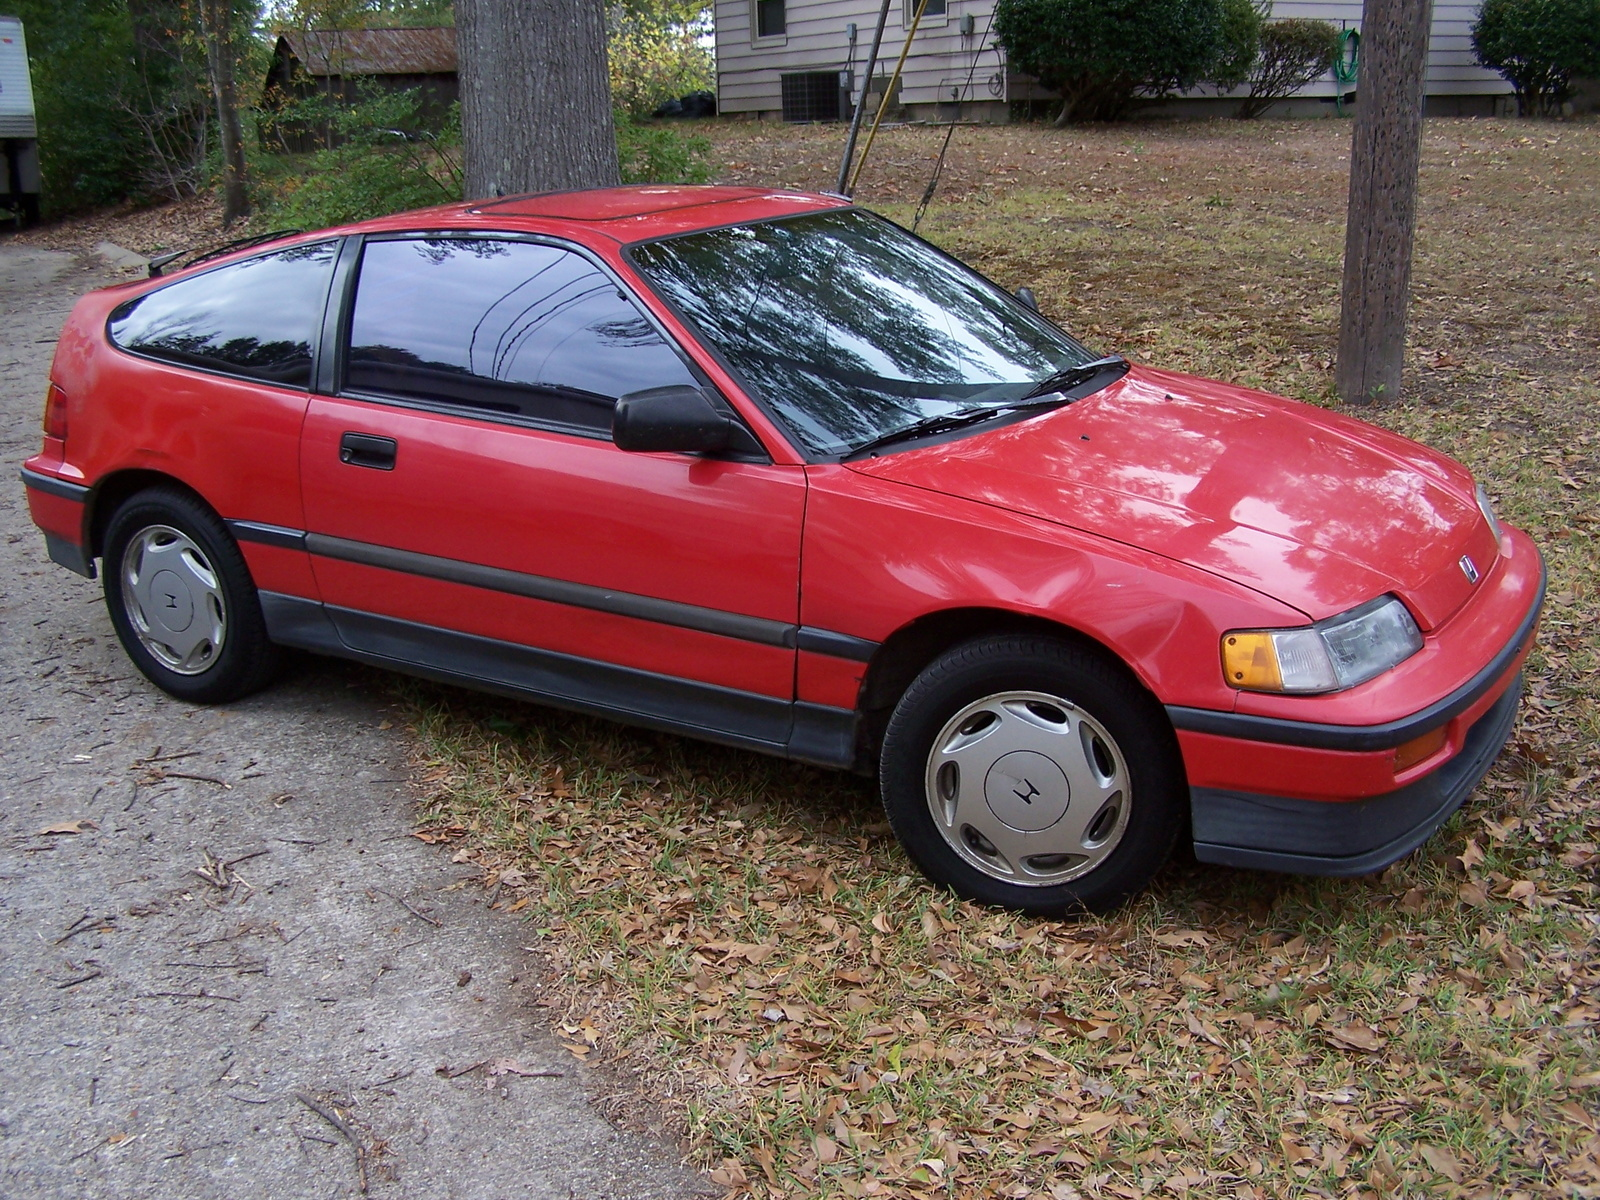 hight resolution of i have a 1988 honda civic crx hatchback and would llike to tow it behind my motorhome the auto is a 5 speed manual transmission